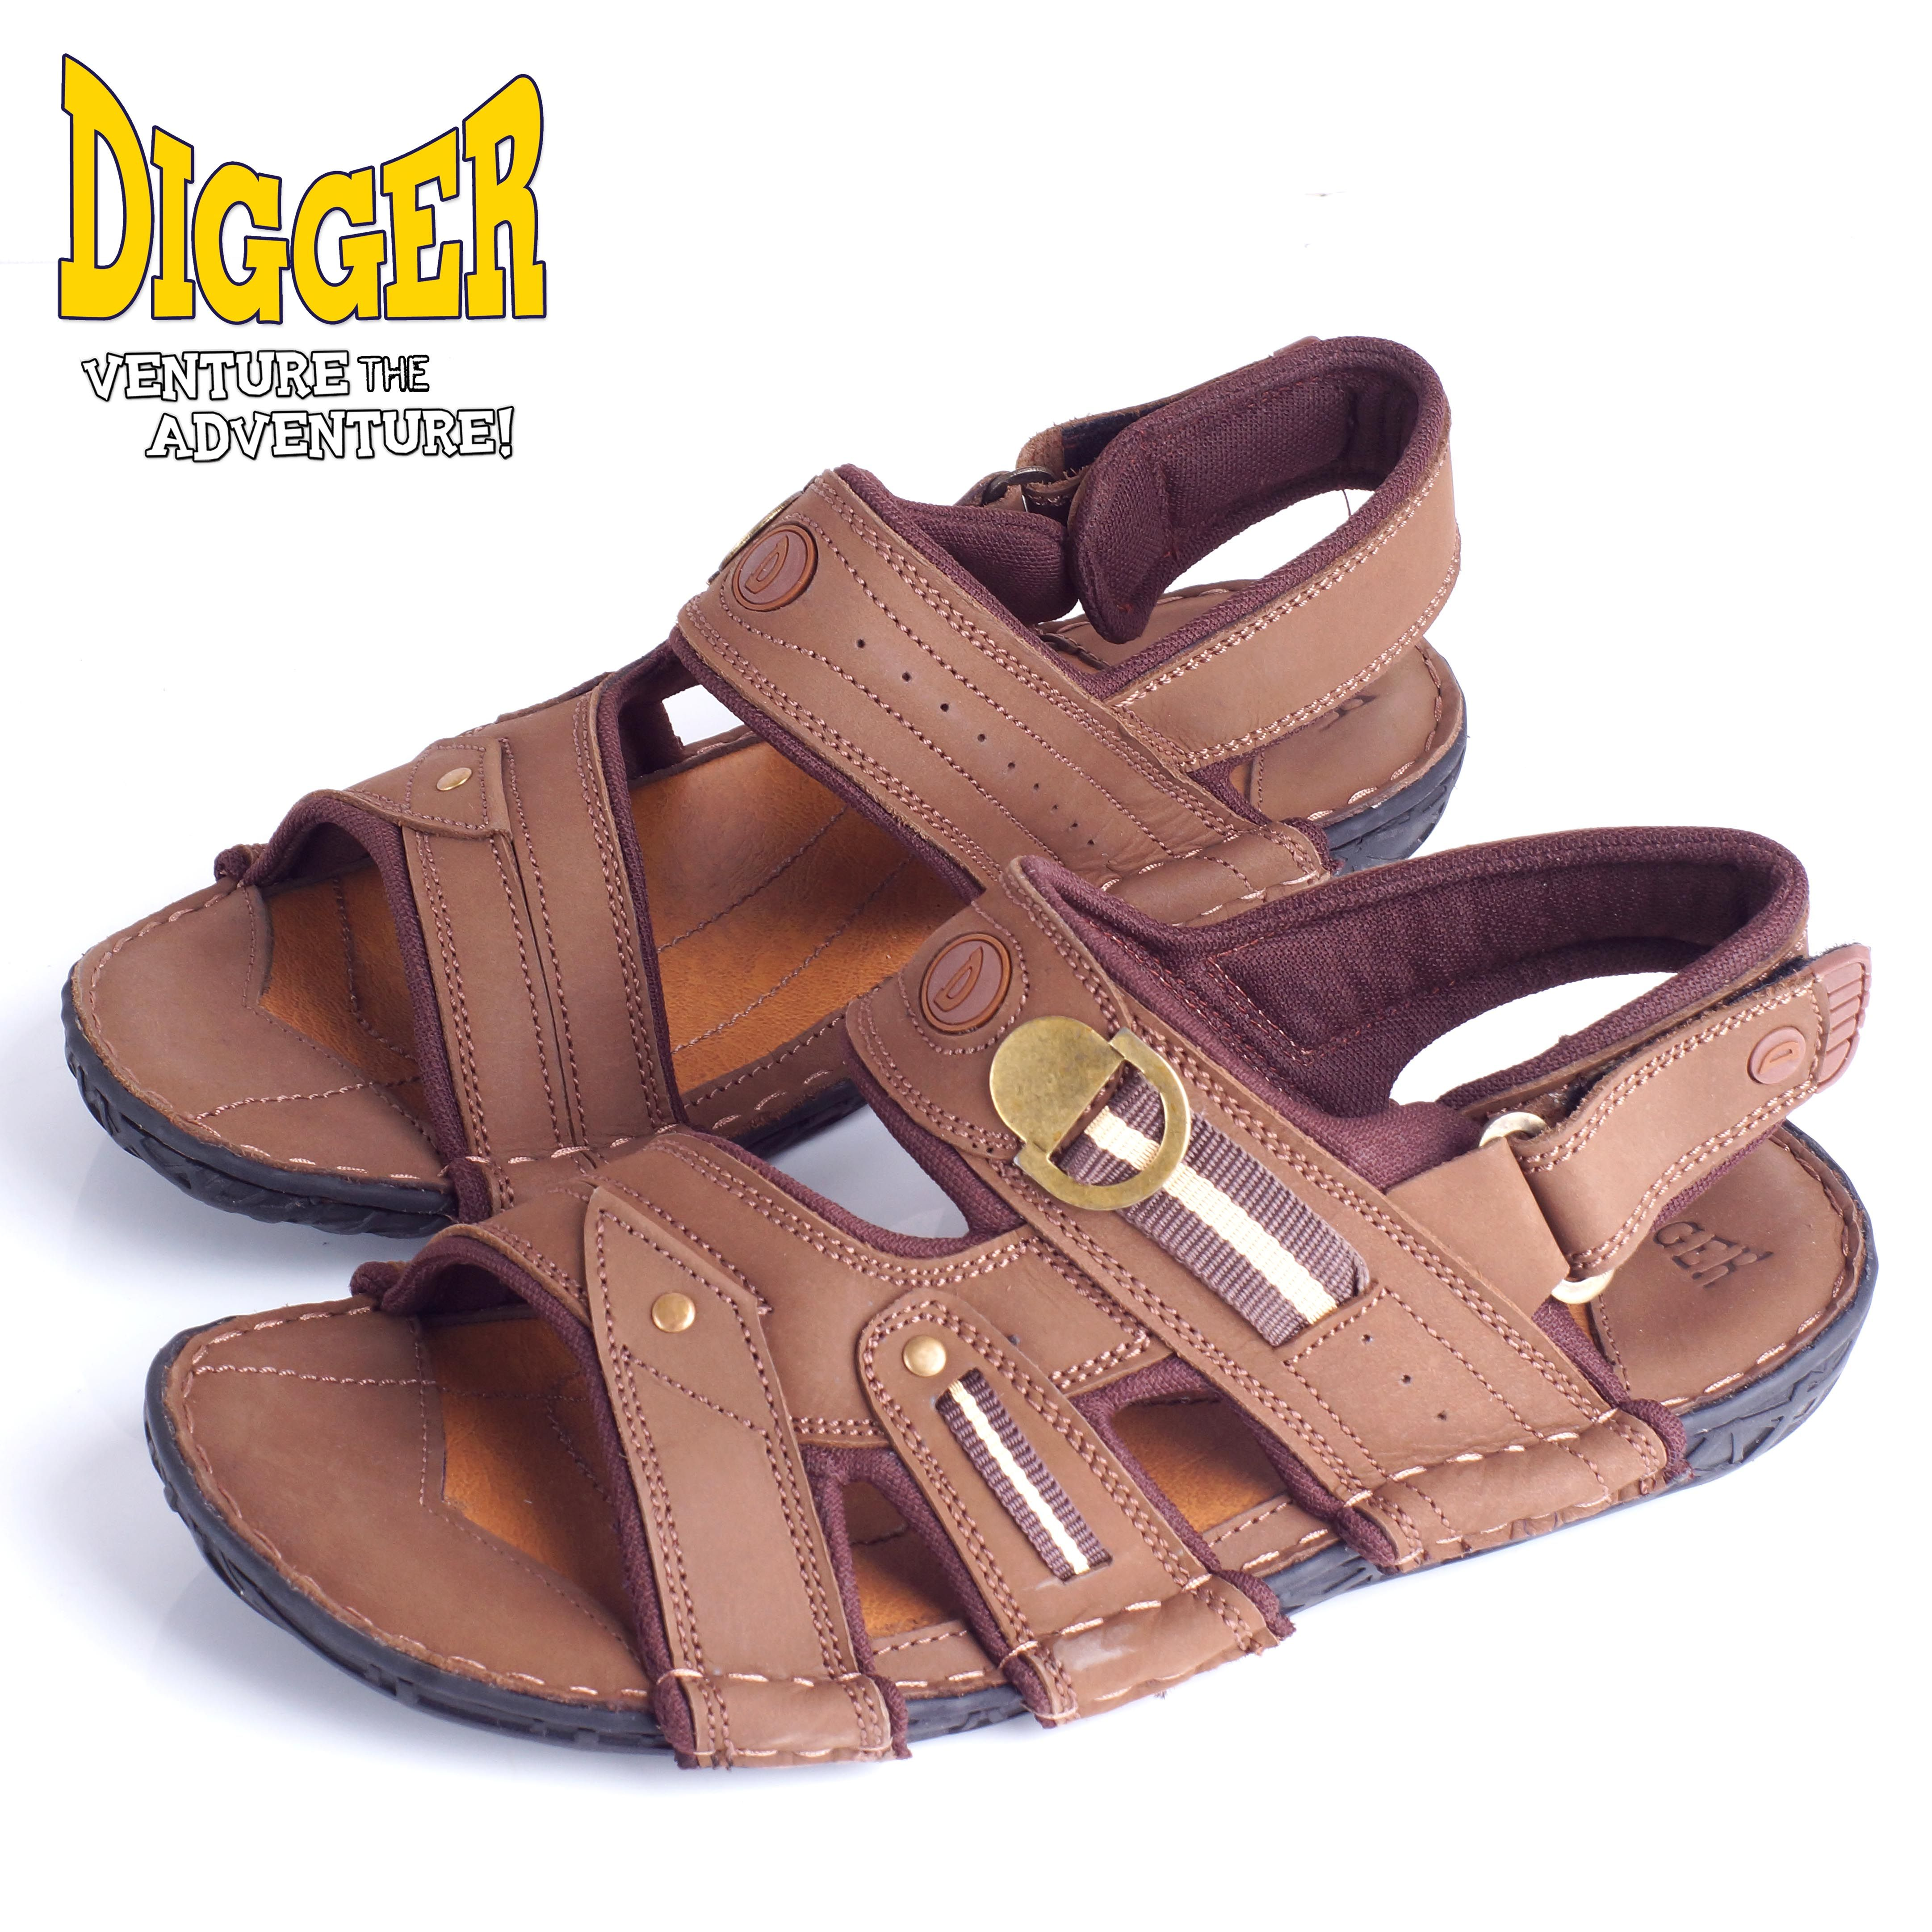 e81d4c7f0e8e Borjan-Men-Sandals-Footwear More casual footwear for this summer !!!  Article   O03DG1902 Price  Rs .2500 -